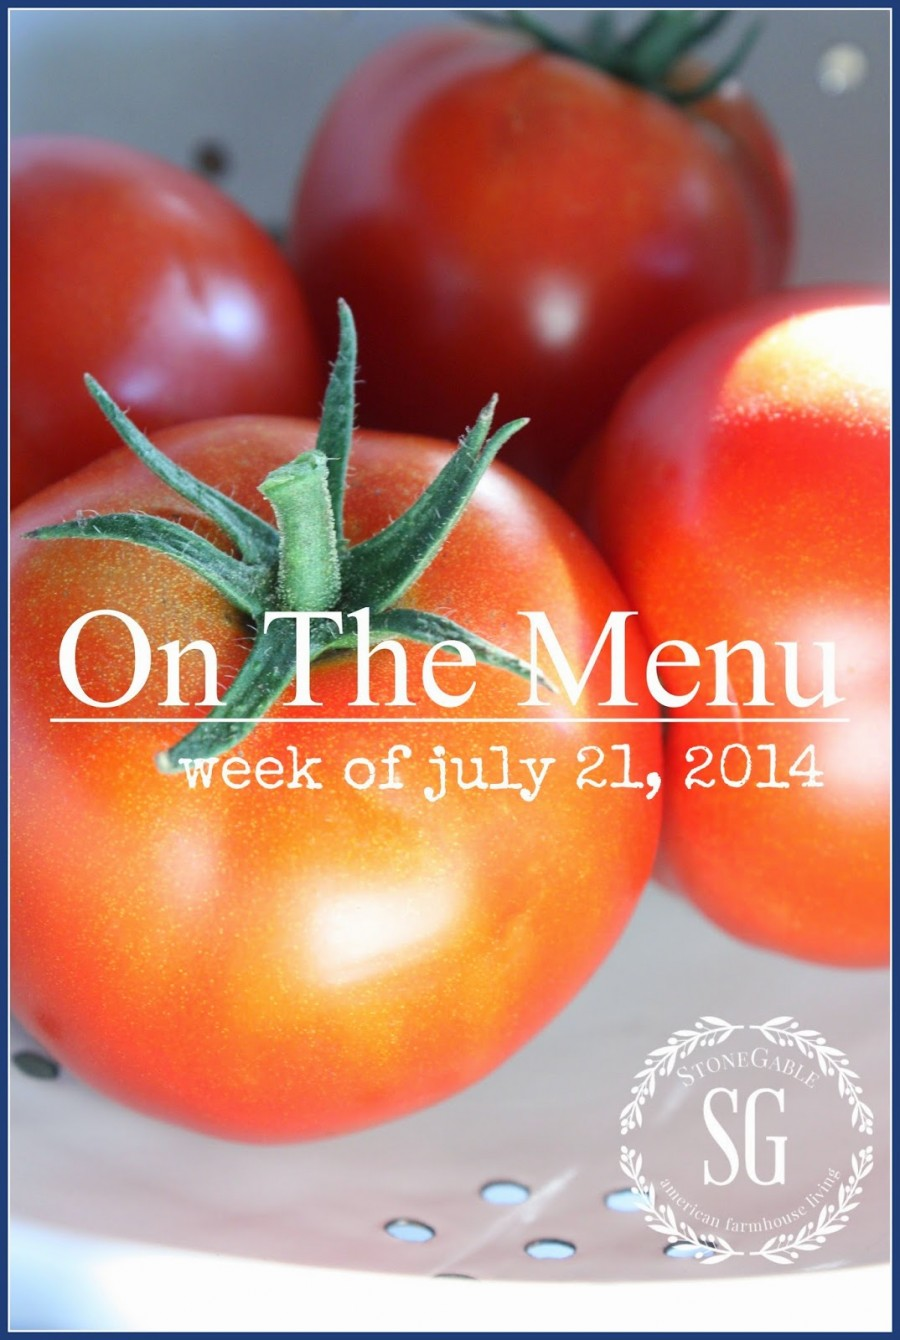 ON THE MENU WEEK OF JULY 21, 2014